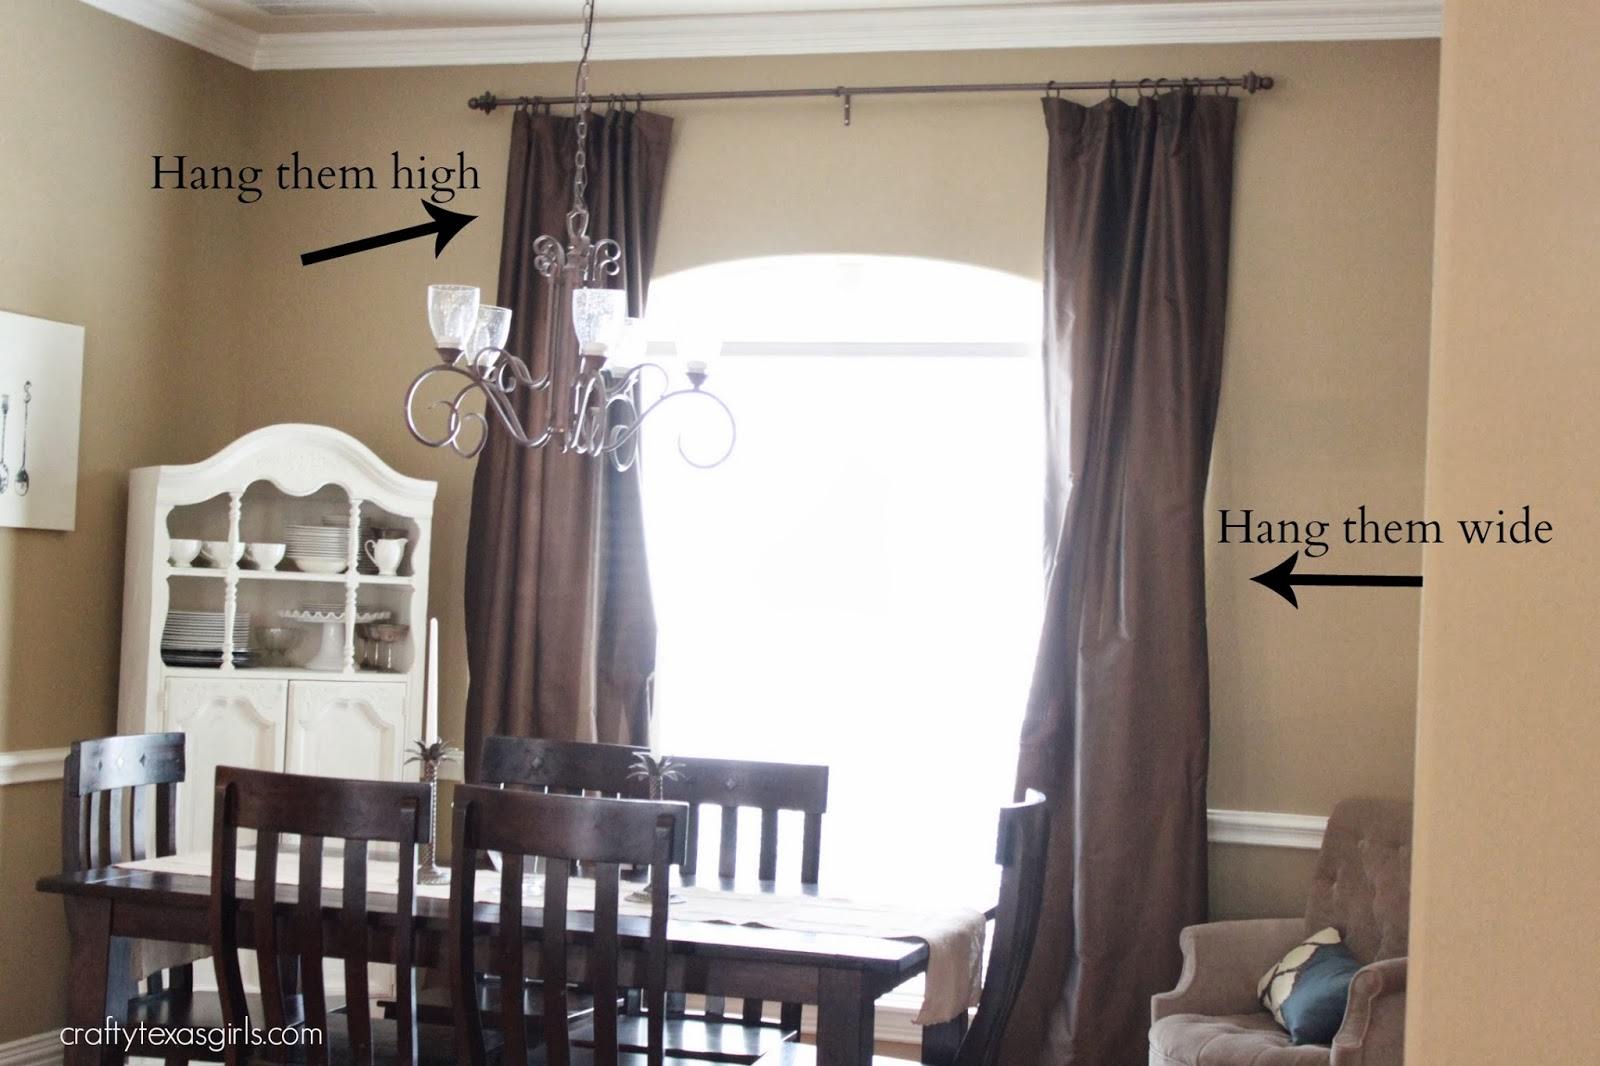 how high to hang curtain rods above window